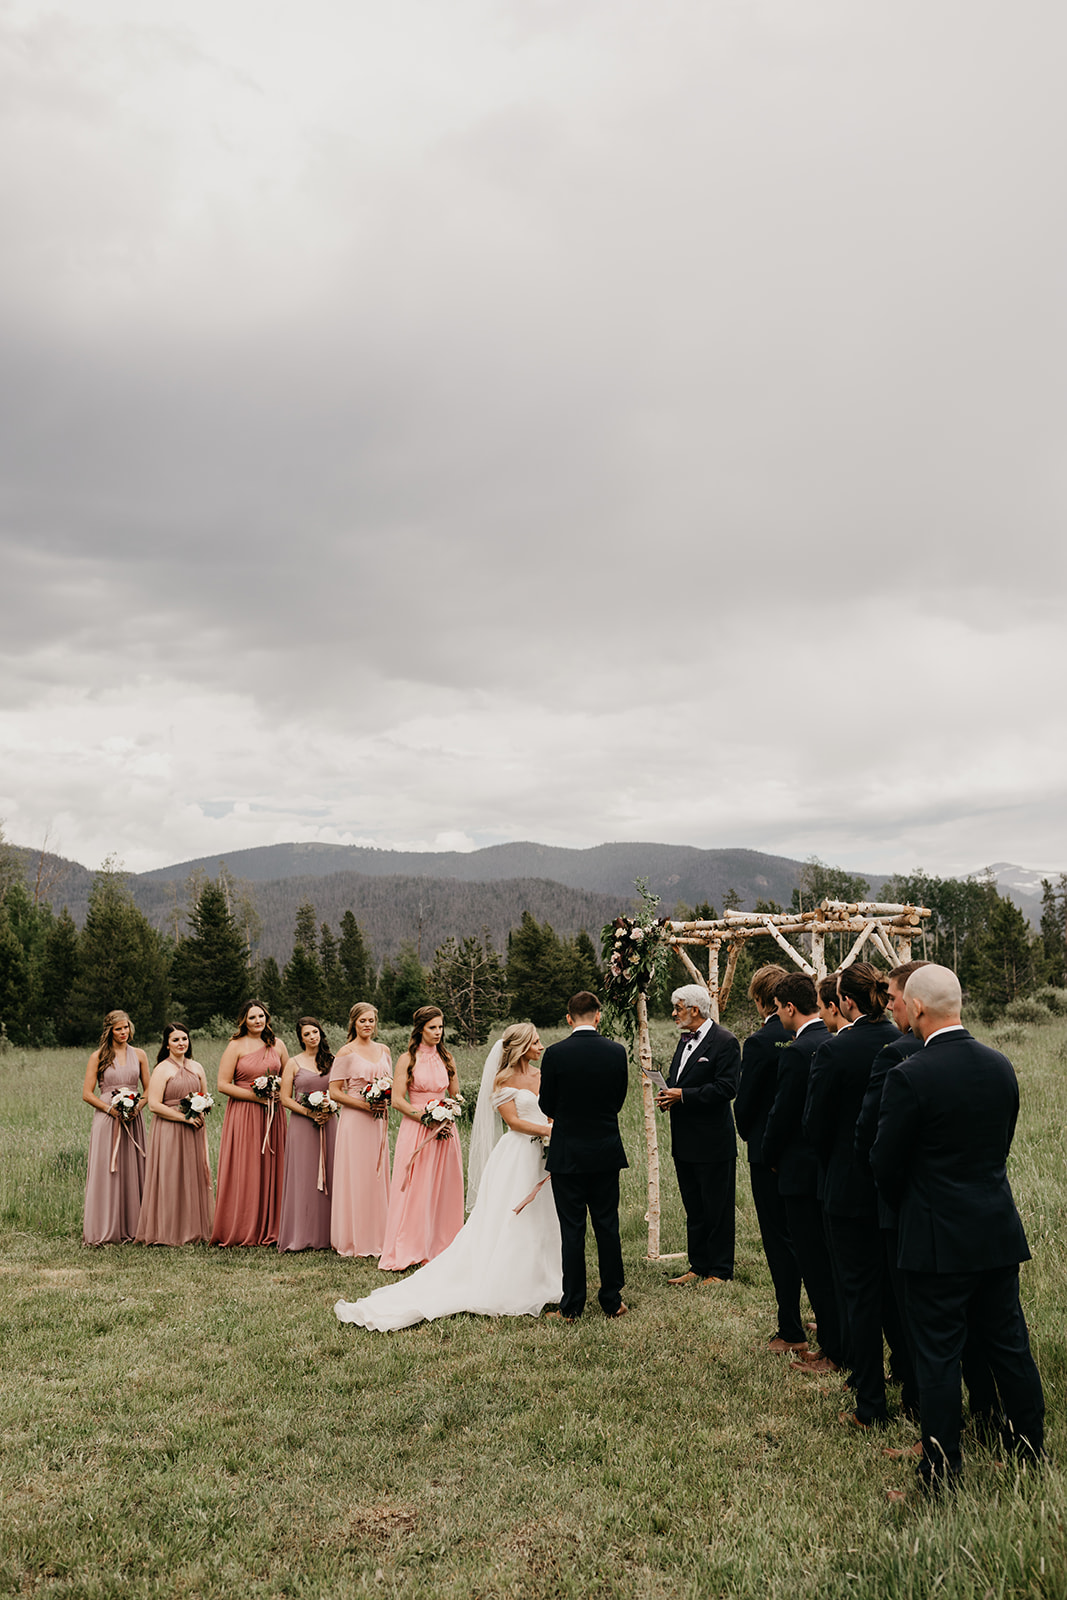 A mountain wedding ceremony